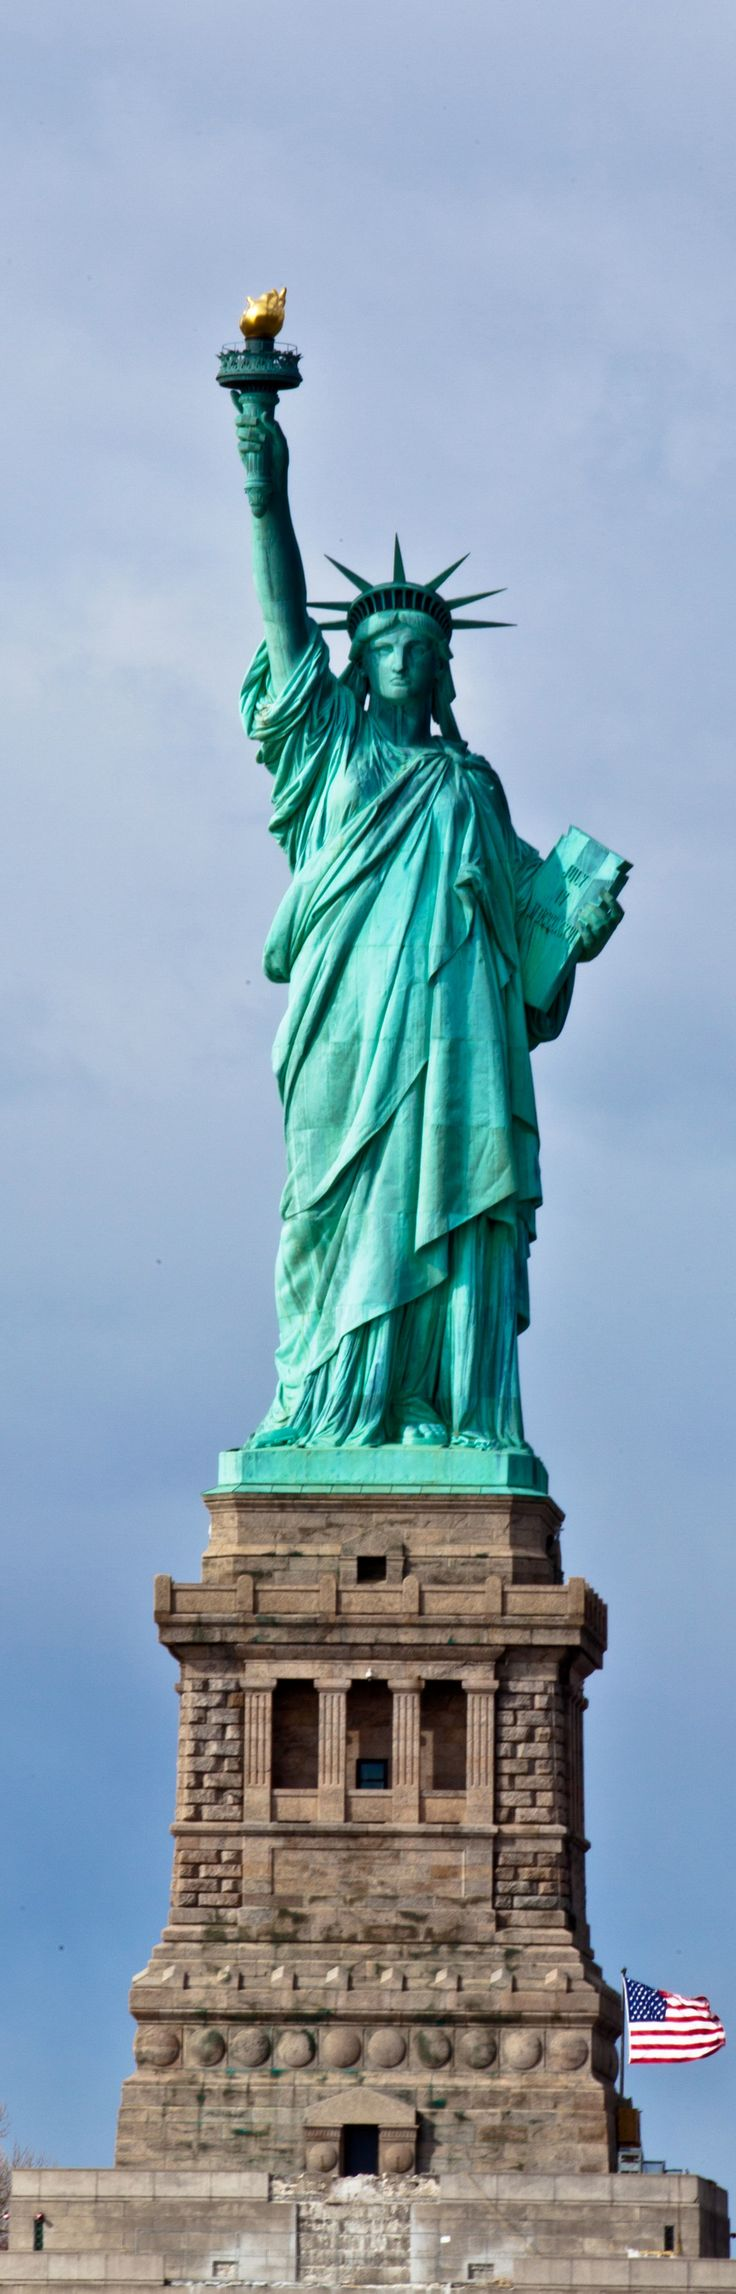 "The Statue of Liberty ~ On Ellis Island in New York City's Hudson River ~ ""Give me your tired, your poor, your huddled masses, yearning to breathe free."""